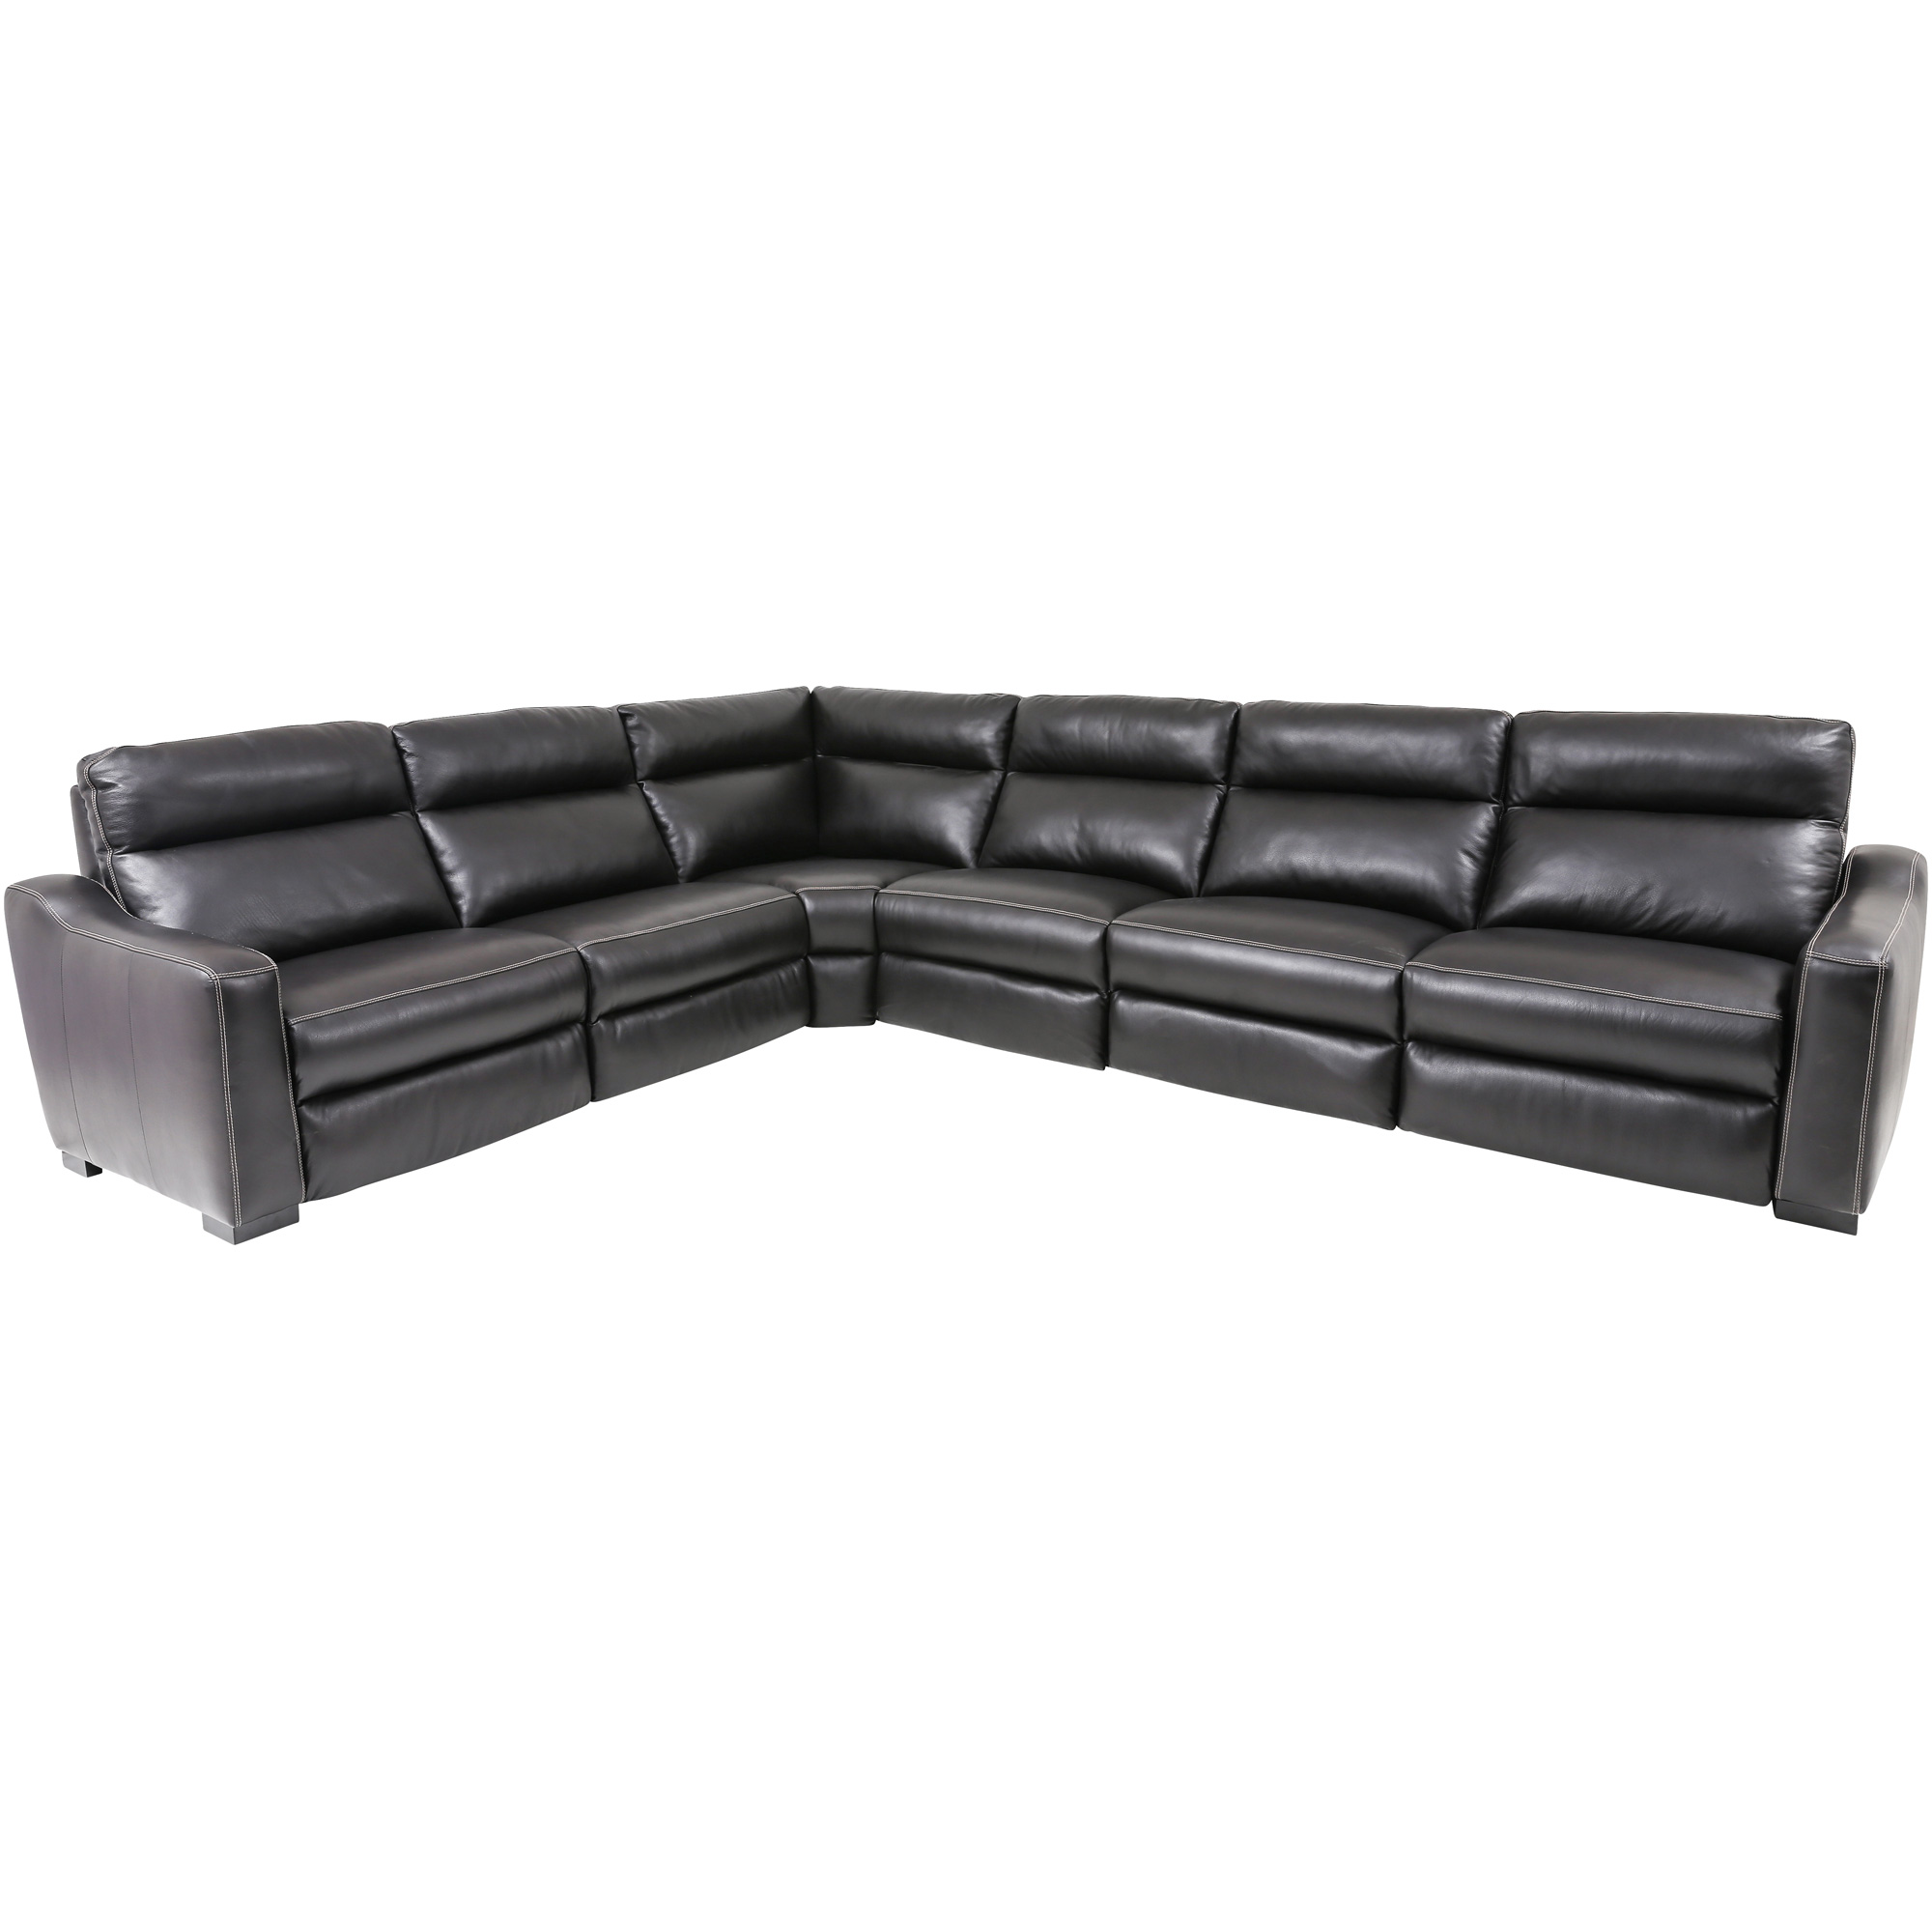 Wah Cheers | Aveo Blackberry Leather 6 Piece Power Plus Reclining Sectional Sofa